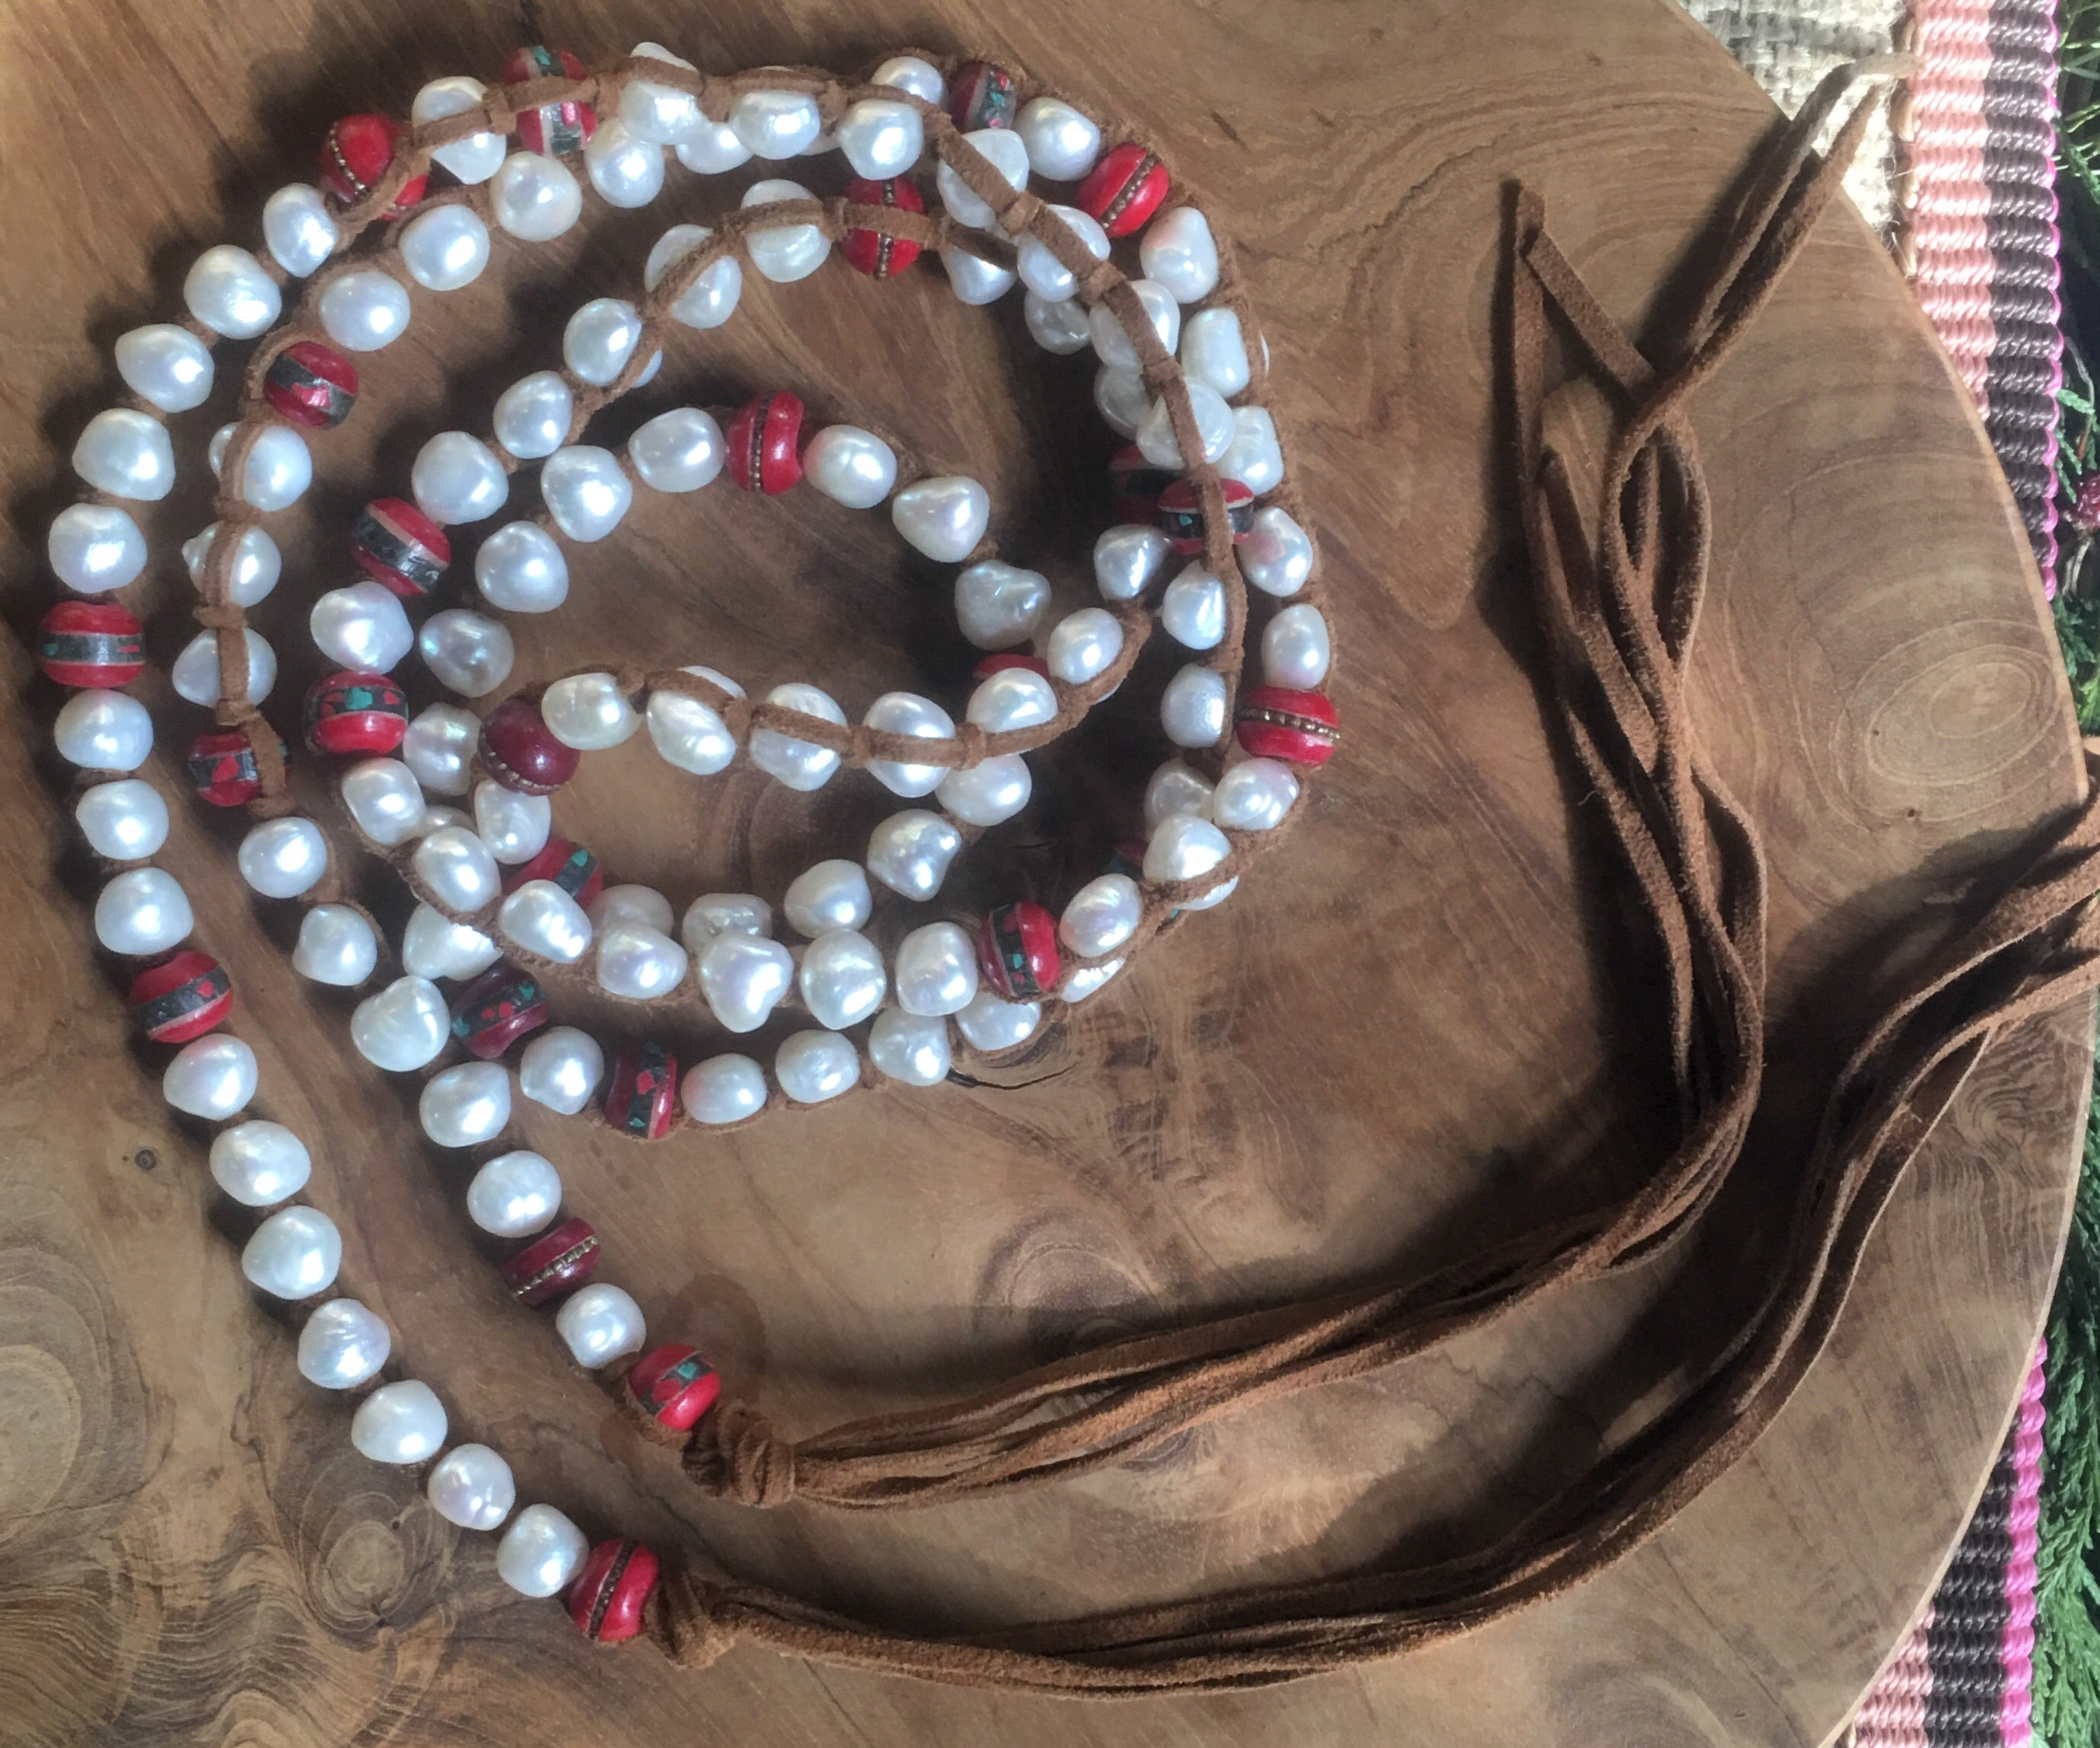 #8 Medium White Pearl Necklace w/ Vintage Mala Beads Necklace